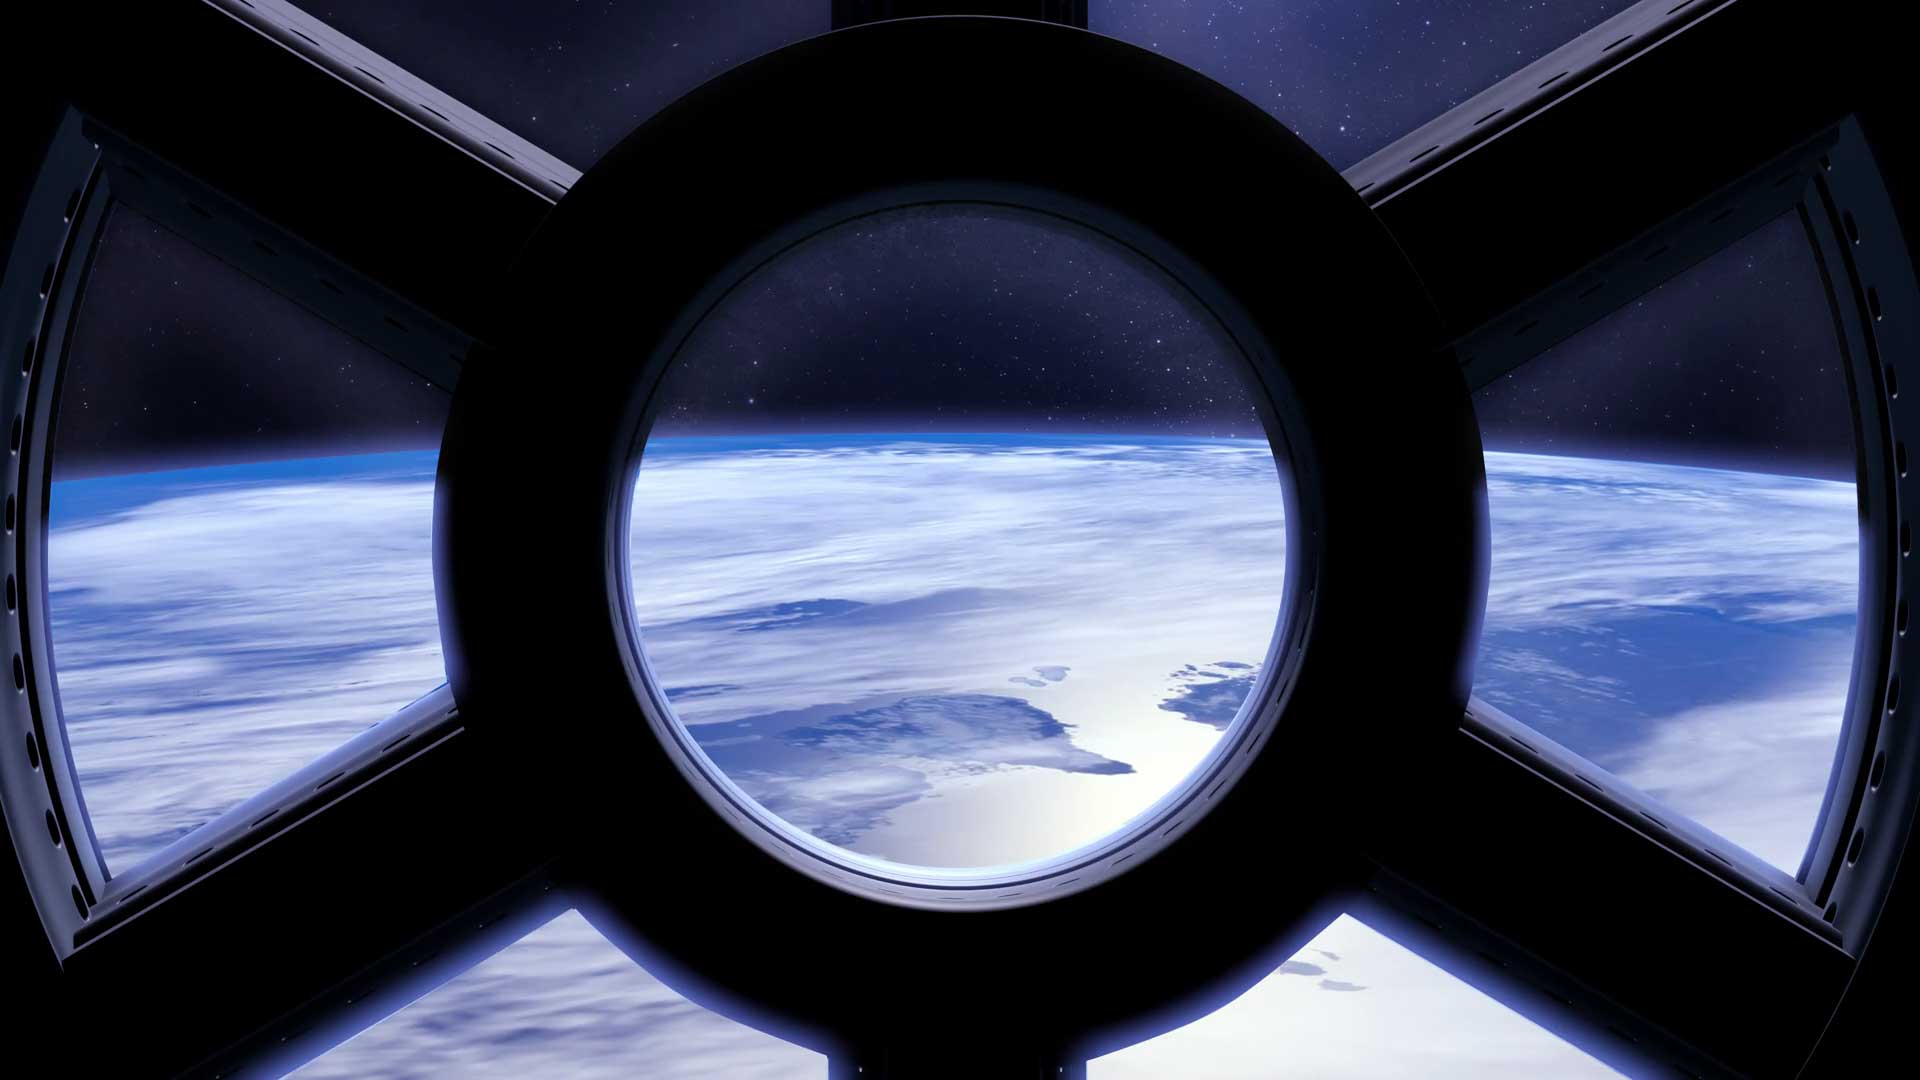 Earth-as-seen-through-window-of-international-space-station-iss-moving-to-the-right-space-earth-orbit-iss-nasa_rr-zoh3dxg_thumbnail-full01